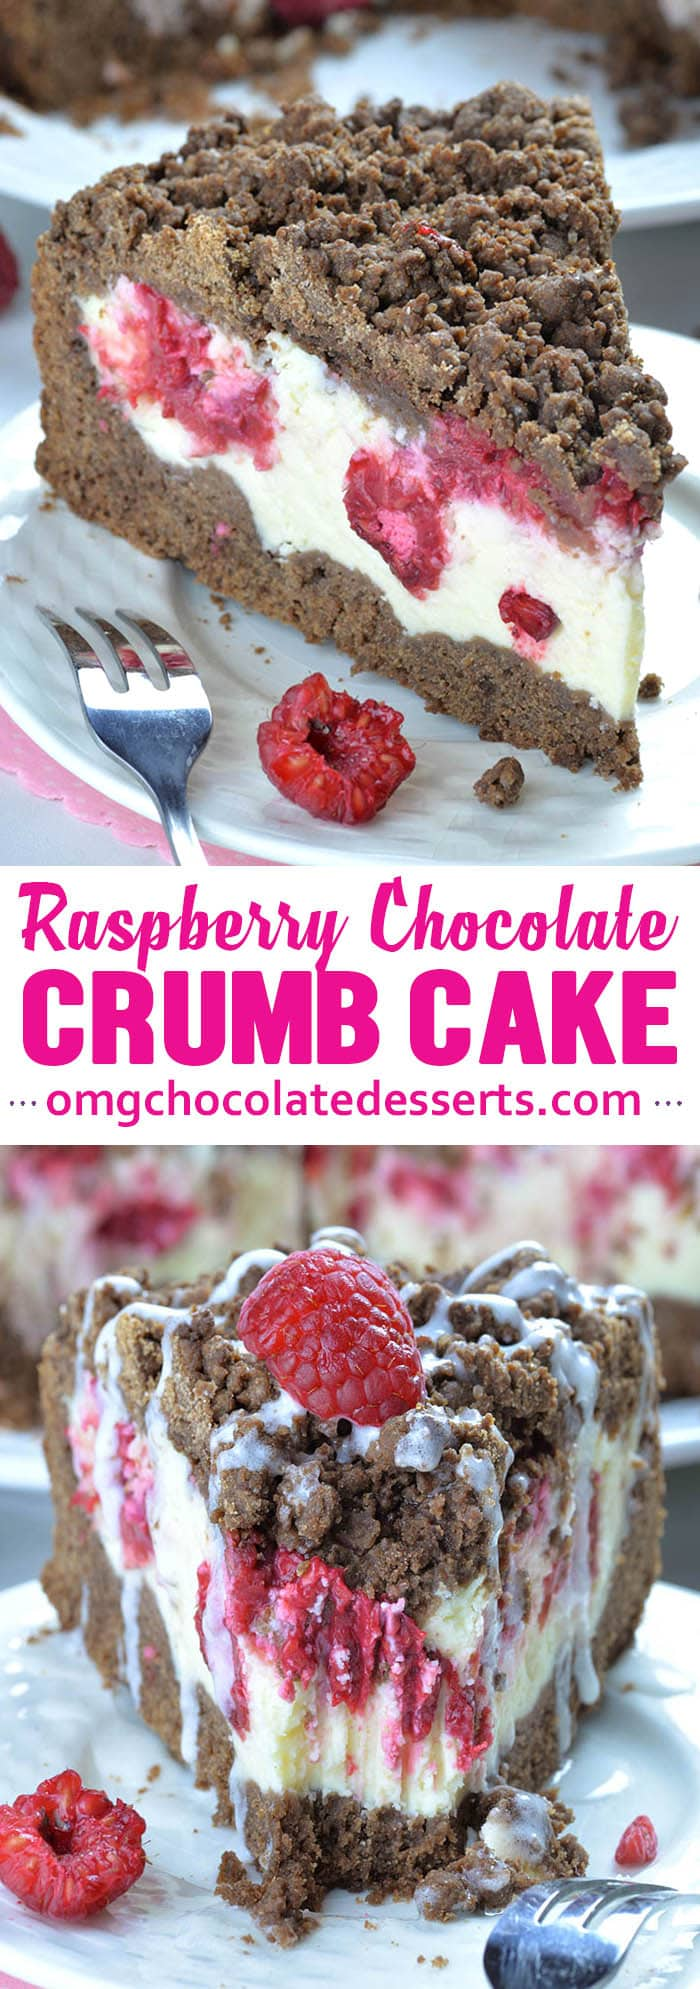 Chocolate Raspberry Crumb Cake with creamy cheesecake filling and raspberries is really rich and decadent coffee cake. If you don't want to start your day with so much sweets, then you should definitely have this for dessert or snack.